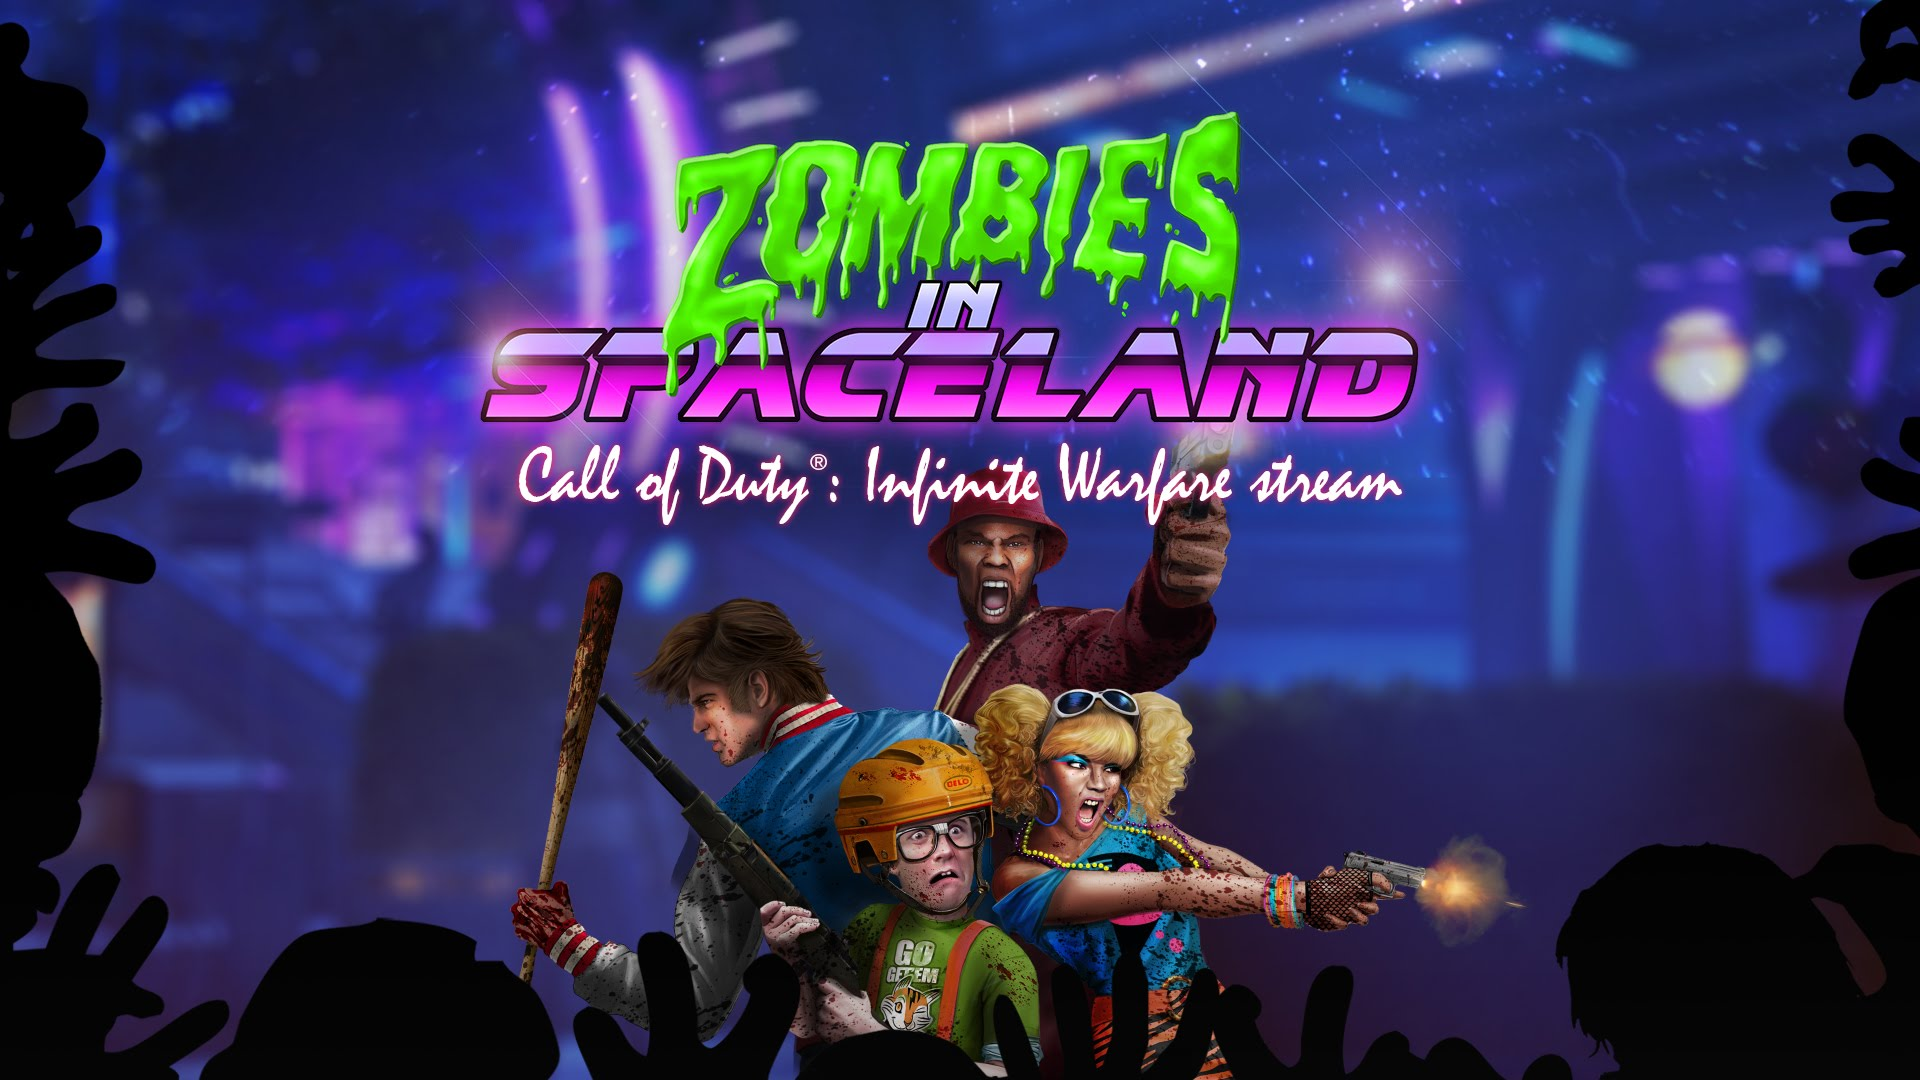 call of duty with zombies in spaceland – retro synthwave